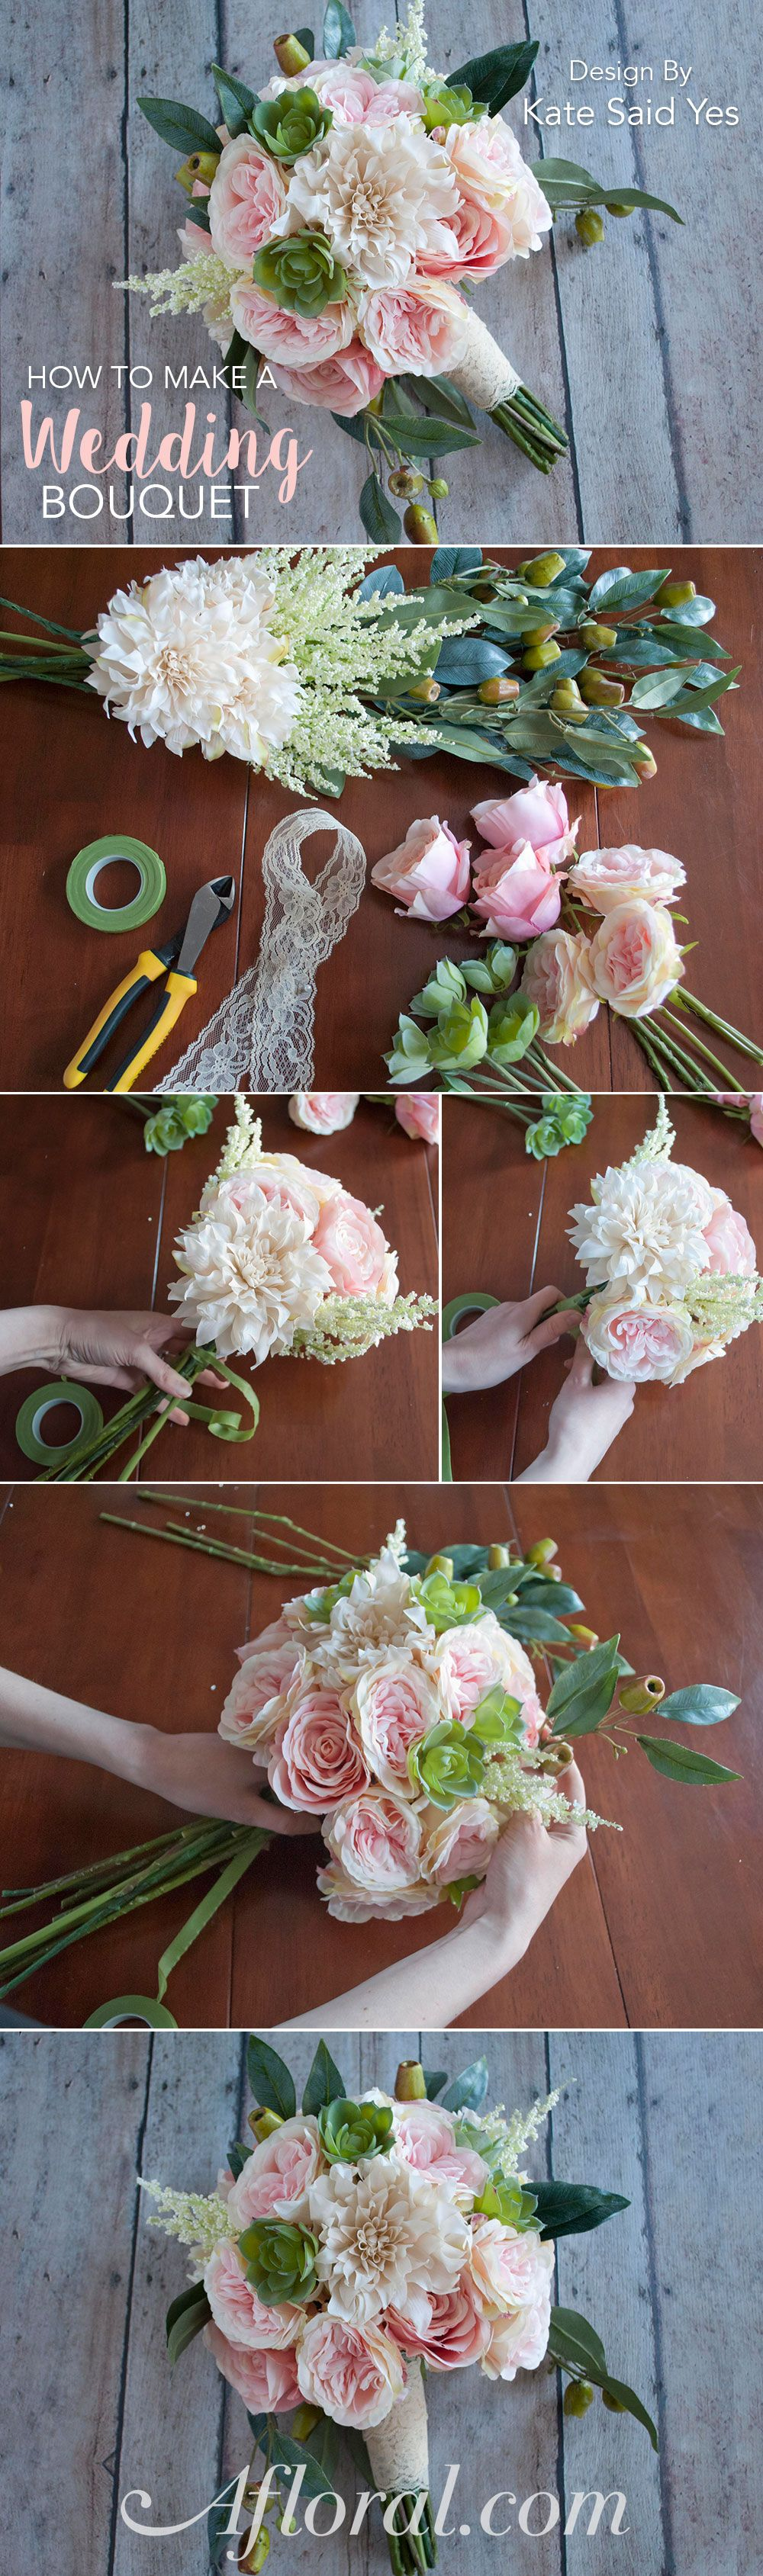 How to make a wedding bouquet silk flowers silk and flower how to make a wedding bouquet with silk flowers from http izmirmasajfo Gallery